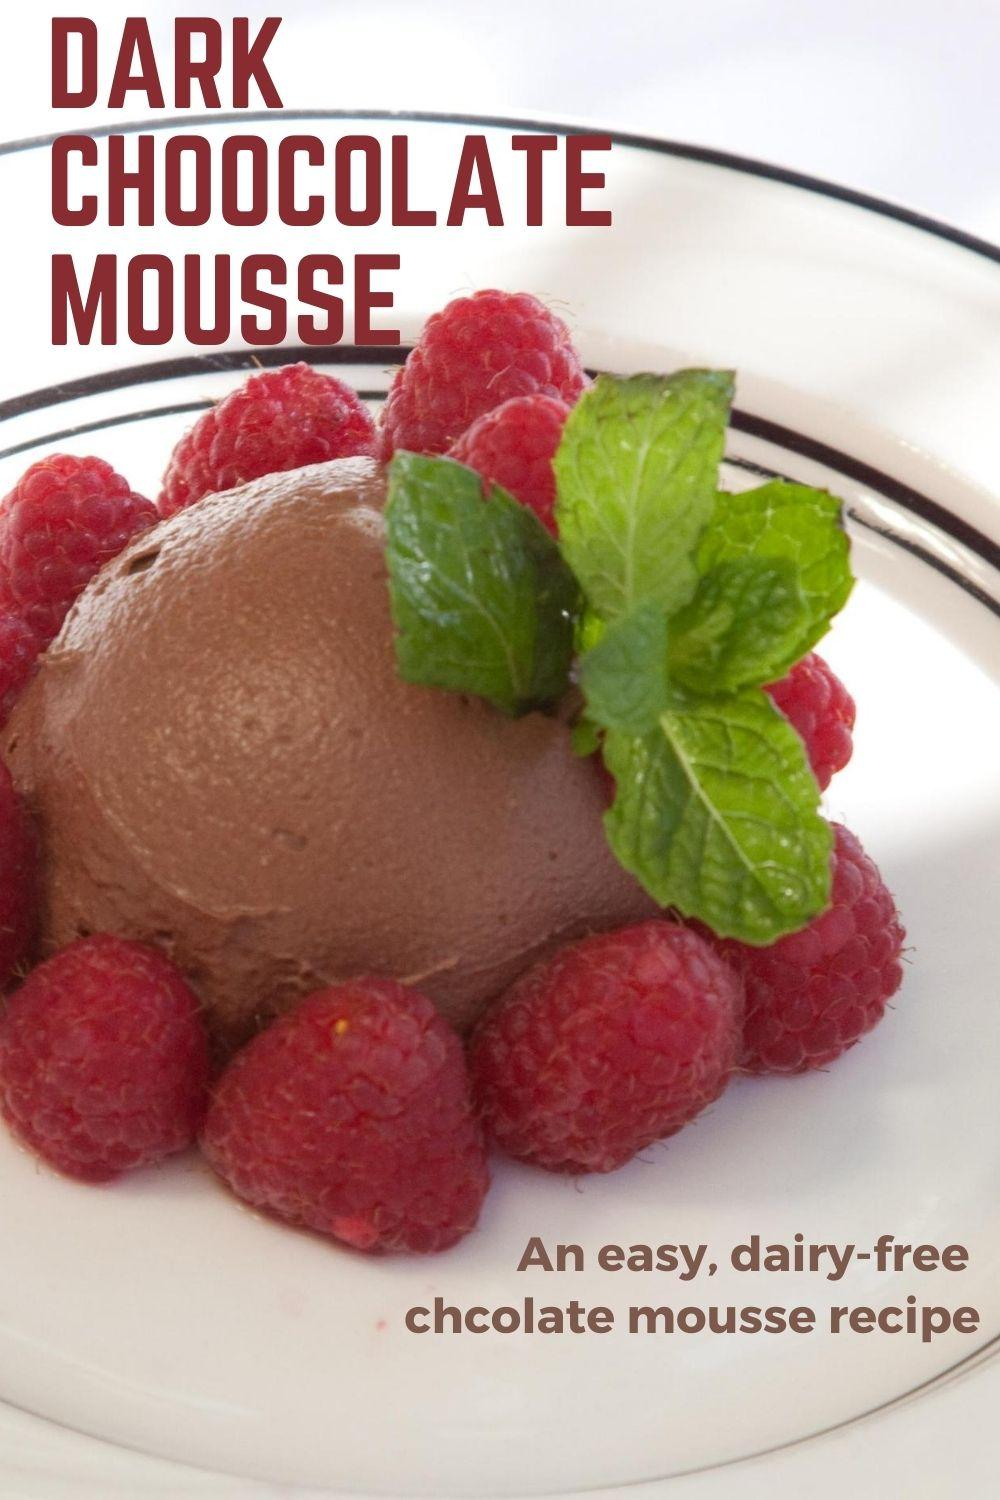 Dark Chocolate Mousse graphic